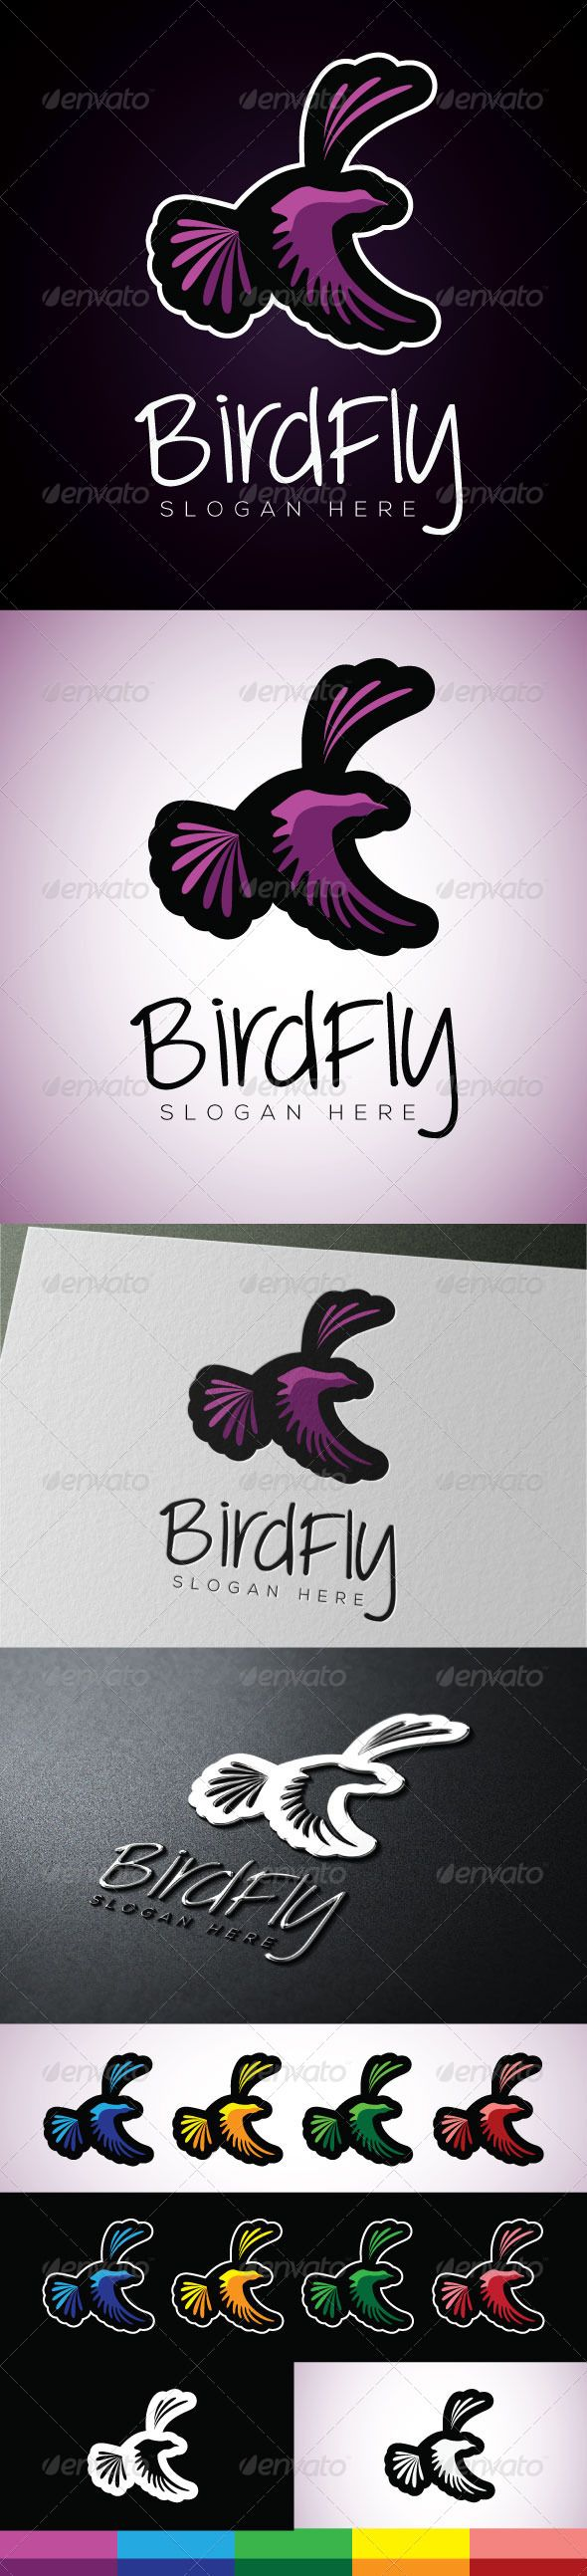 Birdfly — Vector EPS #flying #brand • Available here → https://graphicriver.net/item/birdfly/5039139?ref=pxcr